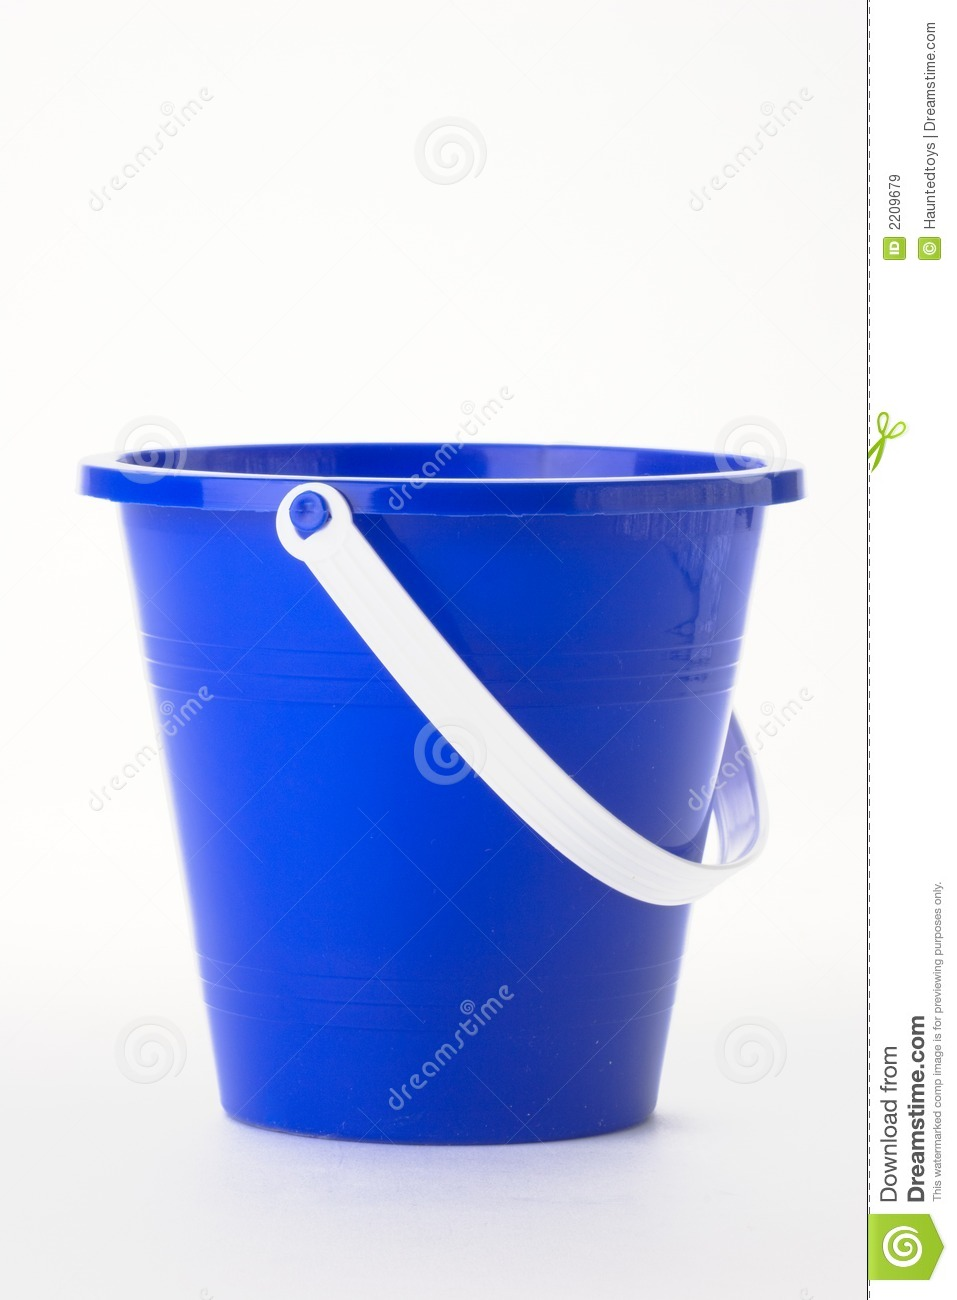 Blue Pail Royalty Free Stock Images - Image: 2209679